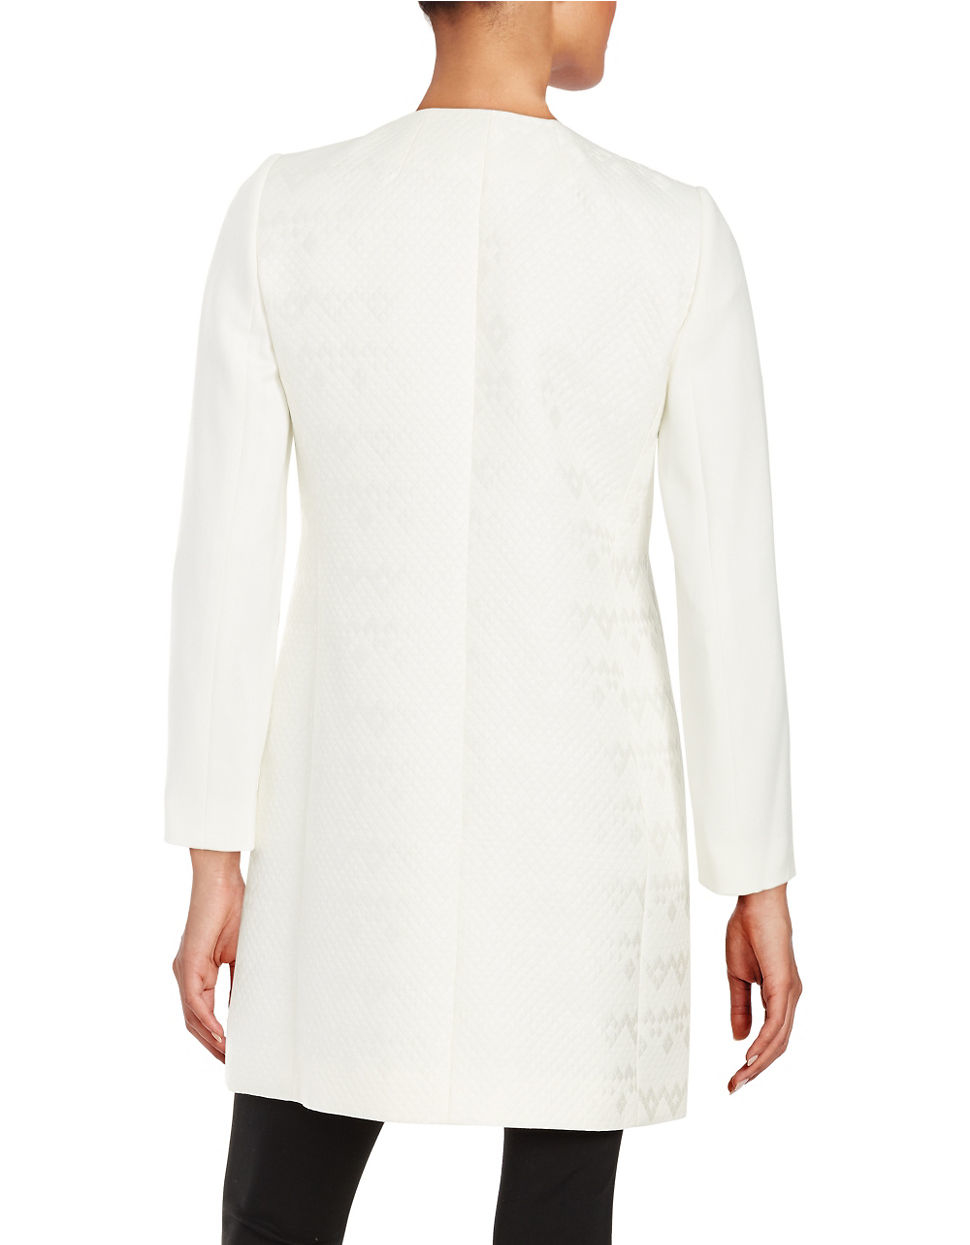 Tahari Quilted Topper In White Lyst